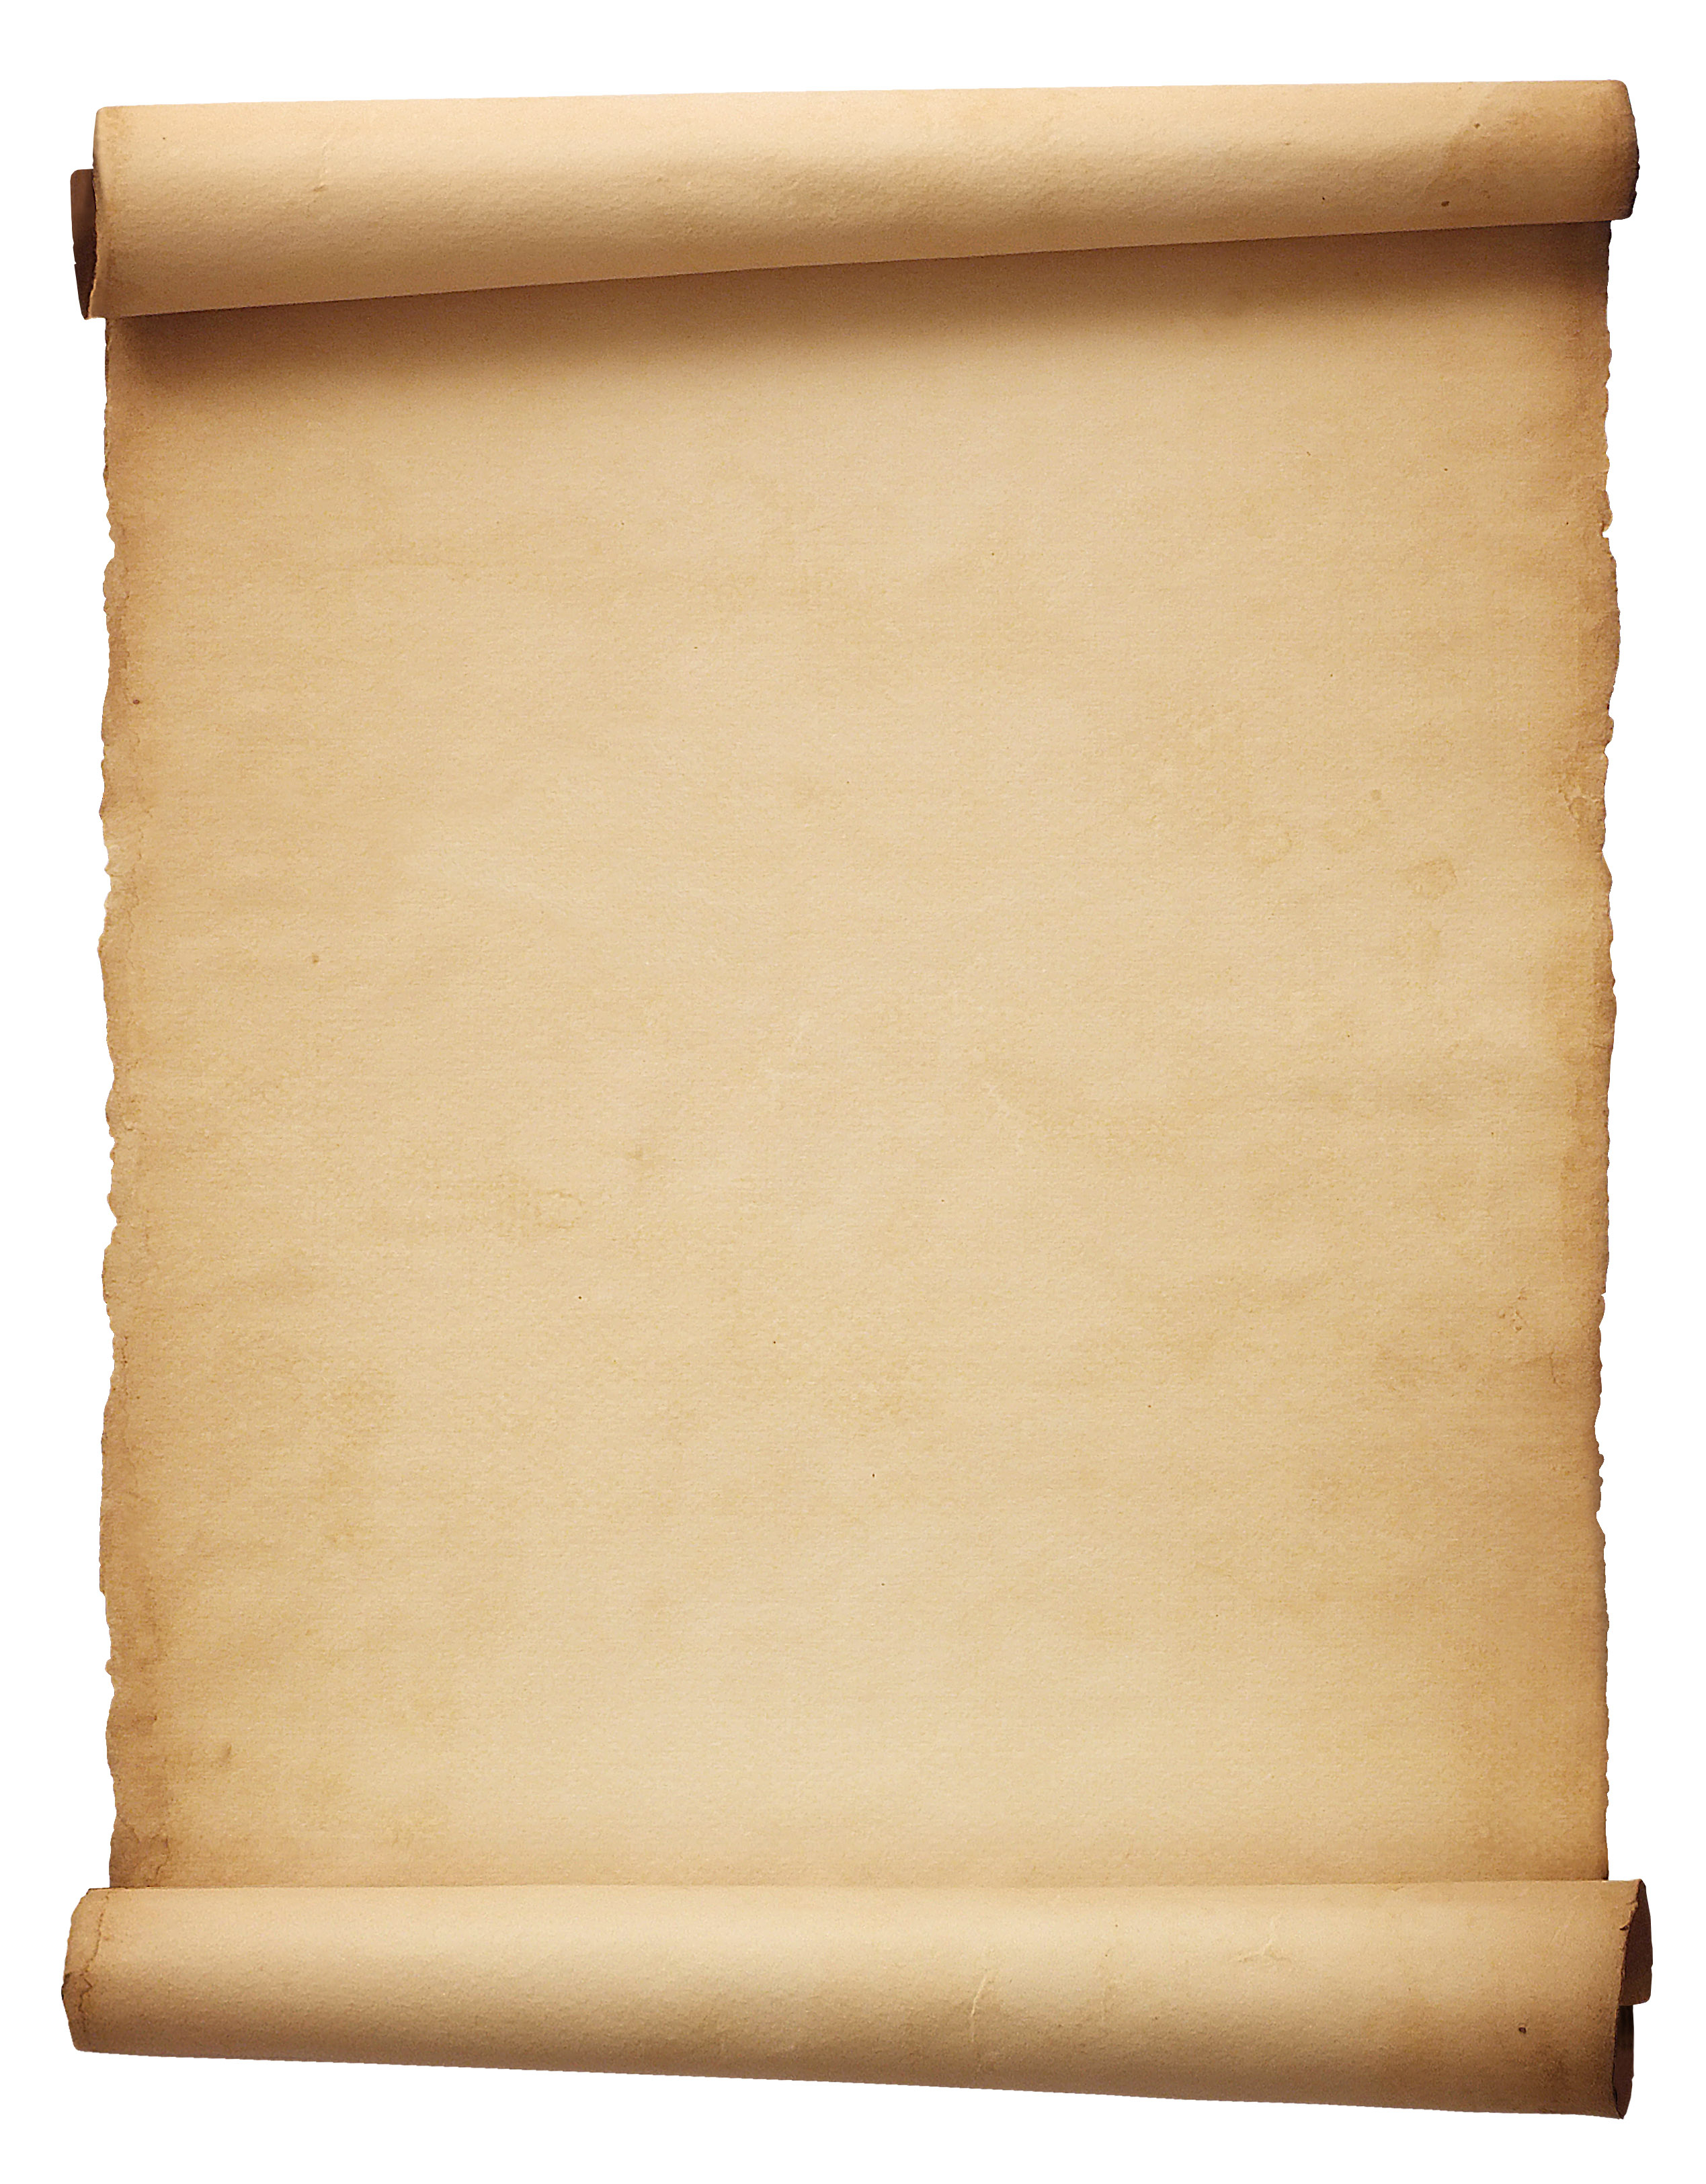 11 Free Scroll Template Images - Microsoft Word, Free Pertaining To Scroll Paper Template Word